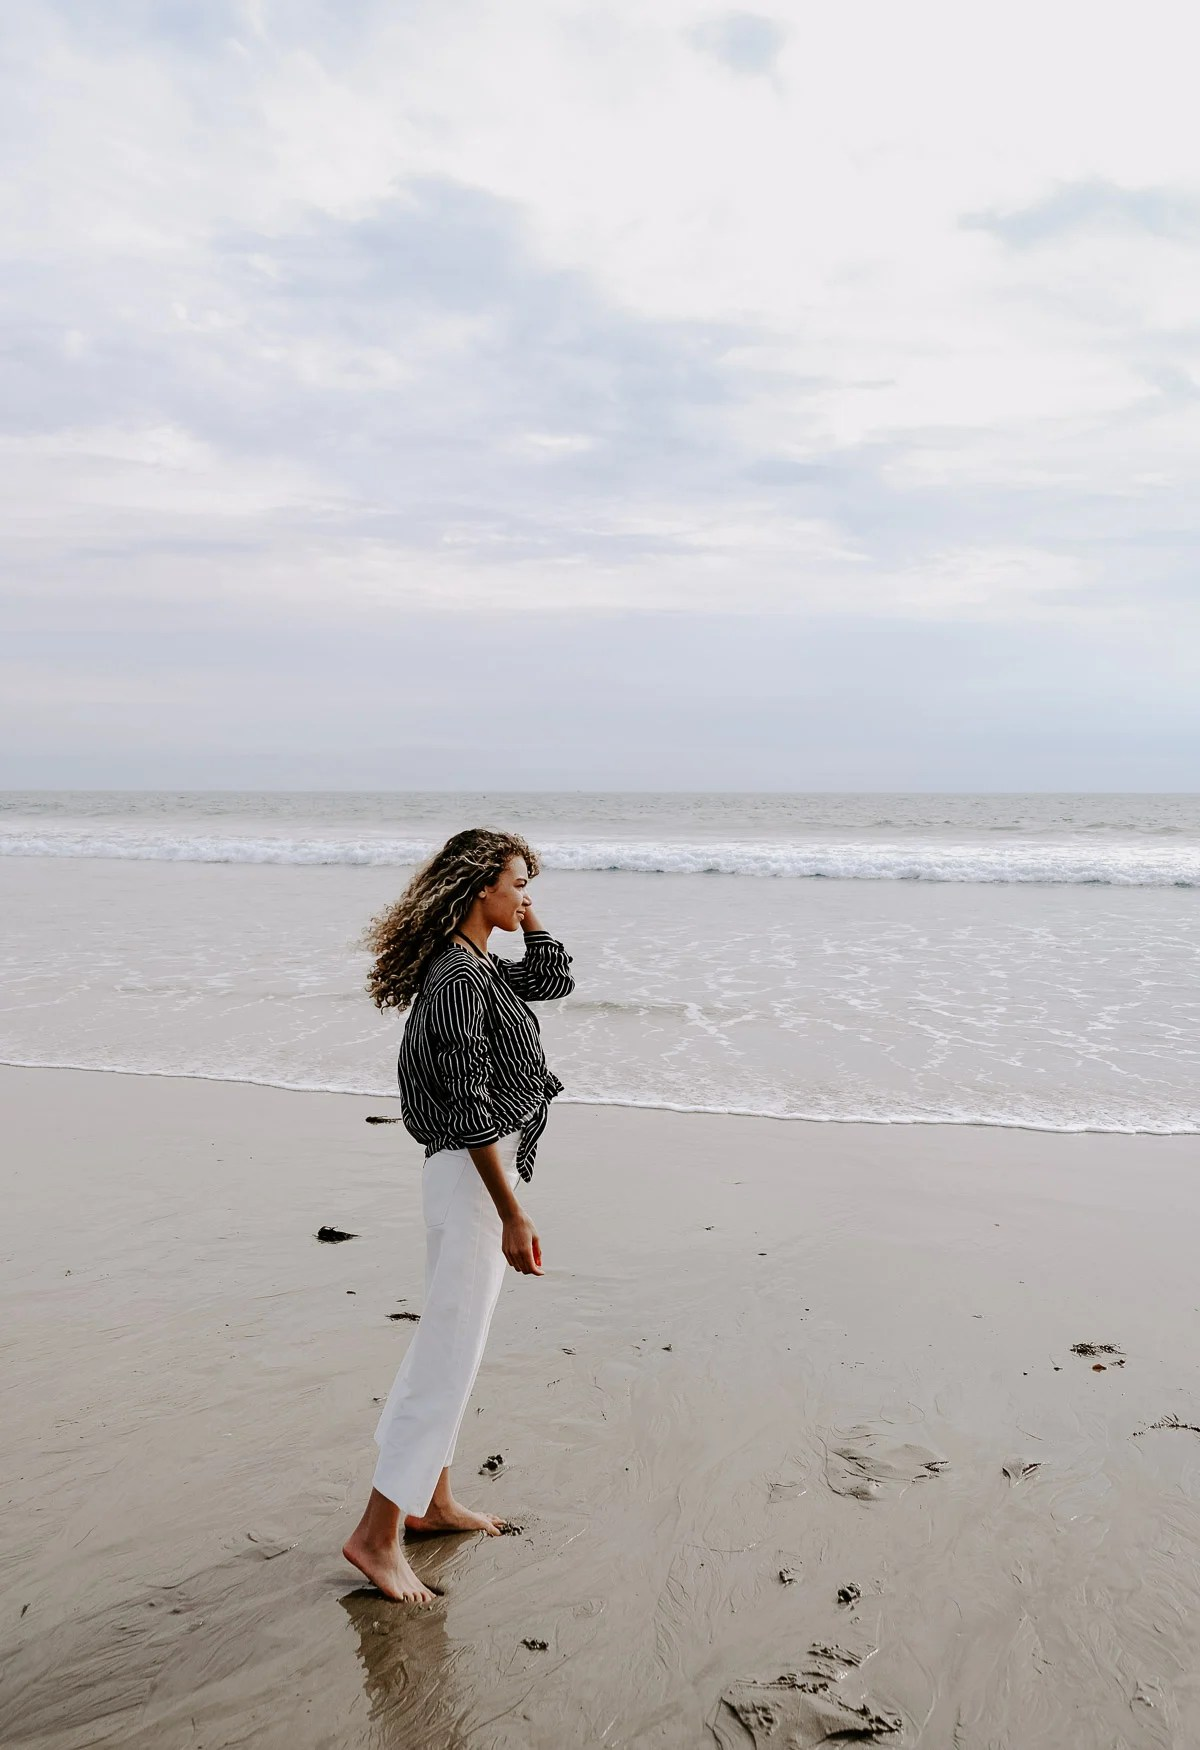 Planning a girl's trip to LA and need ideas on what to do? This chic girl's guide to LA has ideas on what to do, where to eat, where to shop, and where to stay, just to name a few! You have to go to Santa Monica beach!